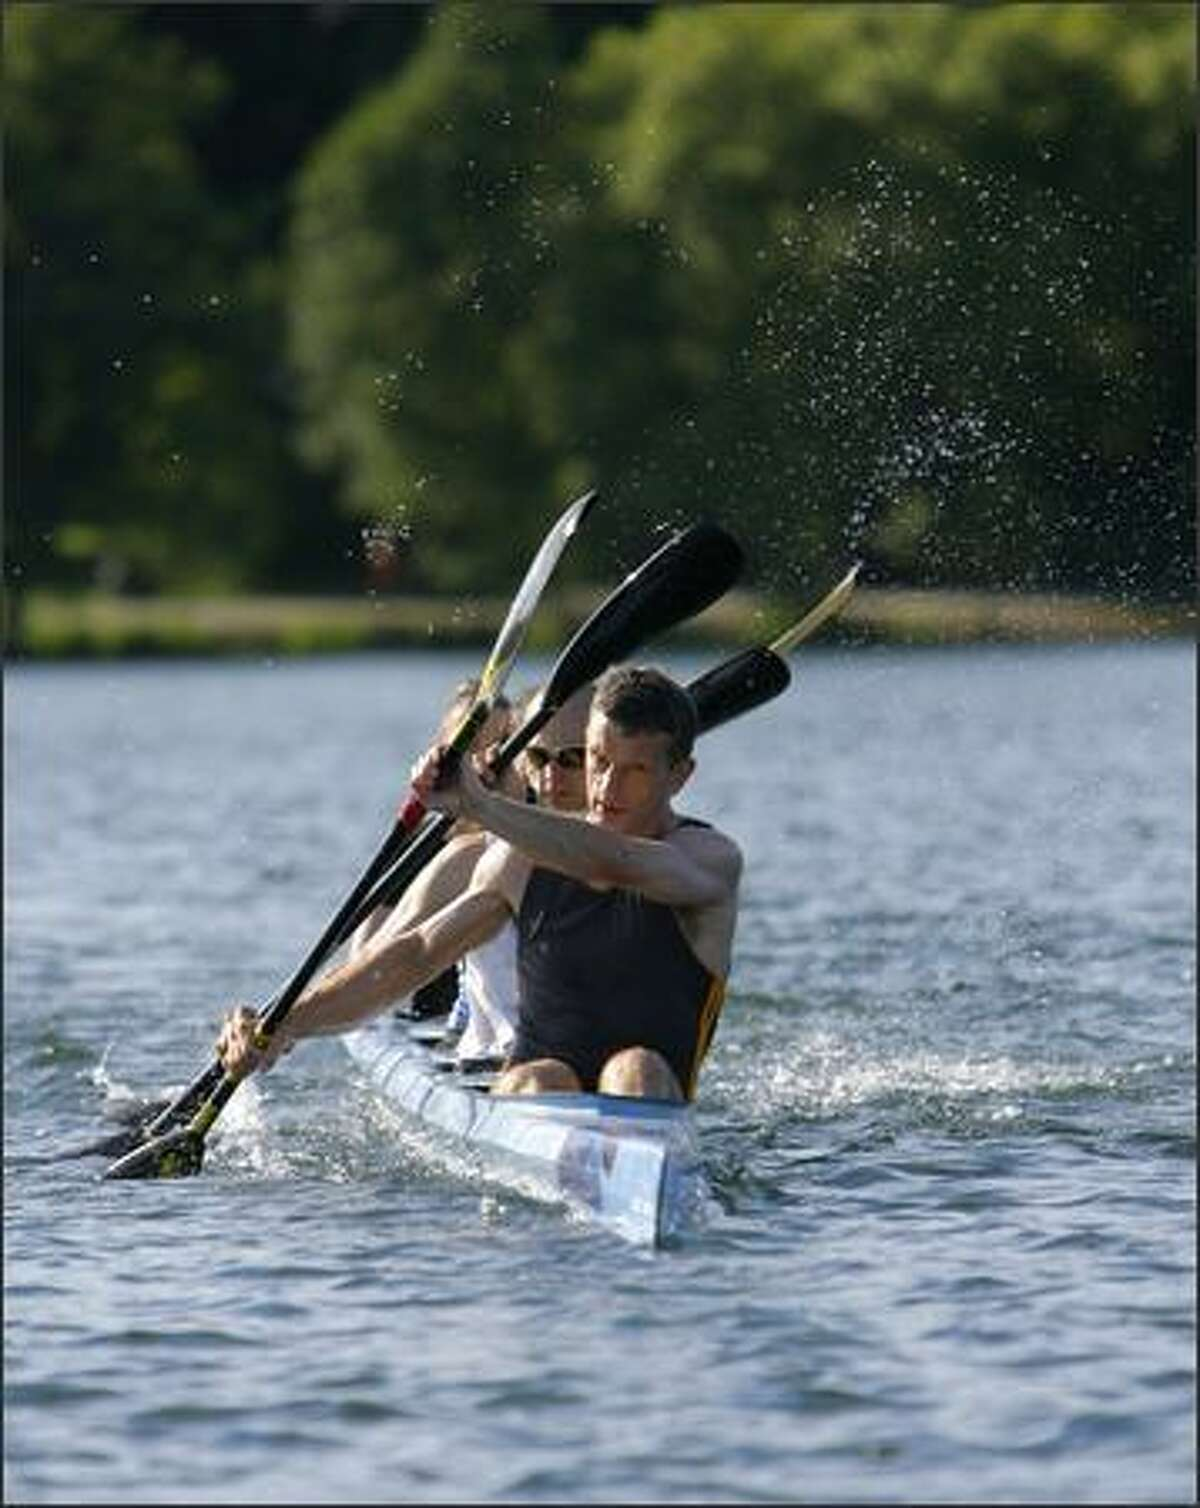 Peter Turcan leads a Seattle Canoe and Kayak Club four-person kayak masters team during a workout on Green Lake.